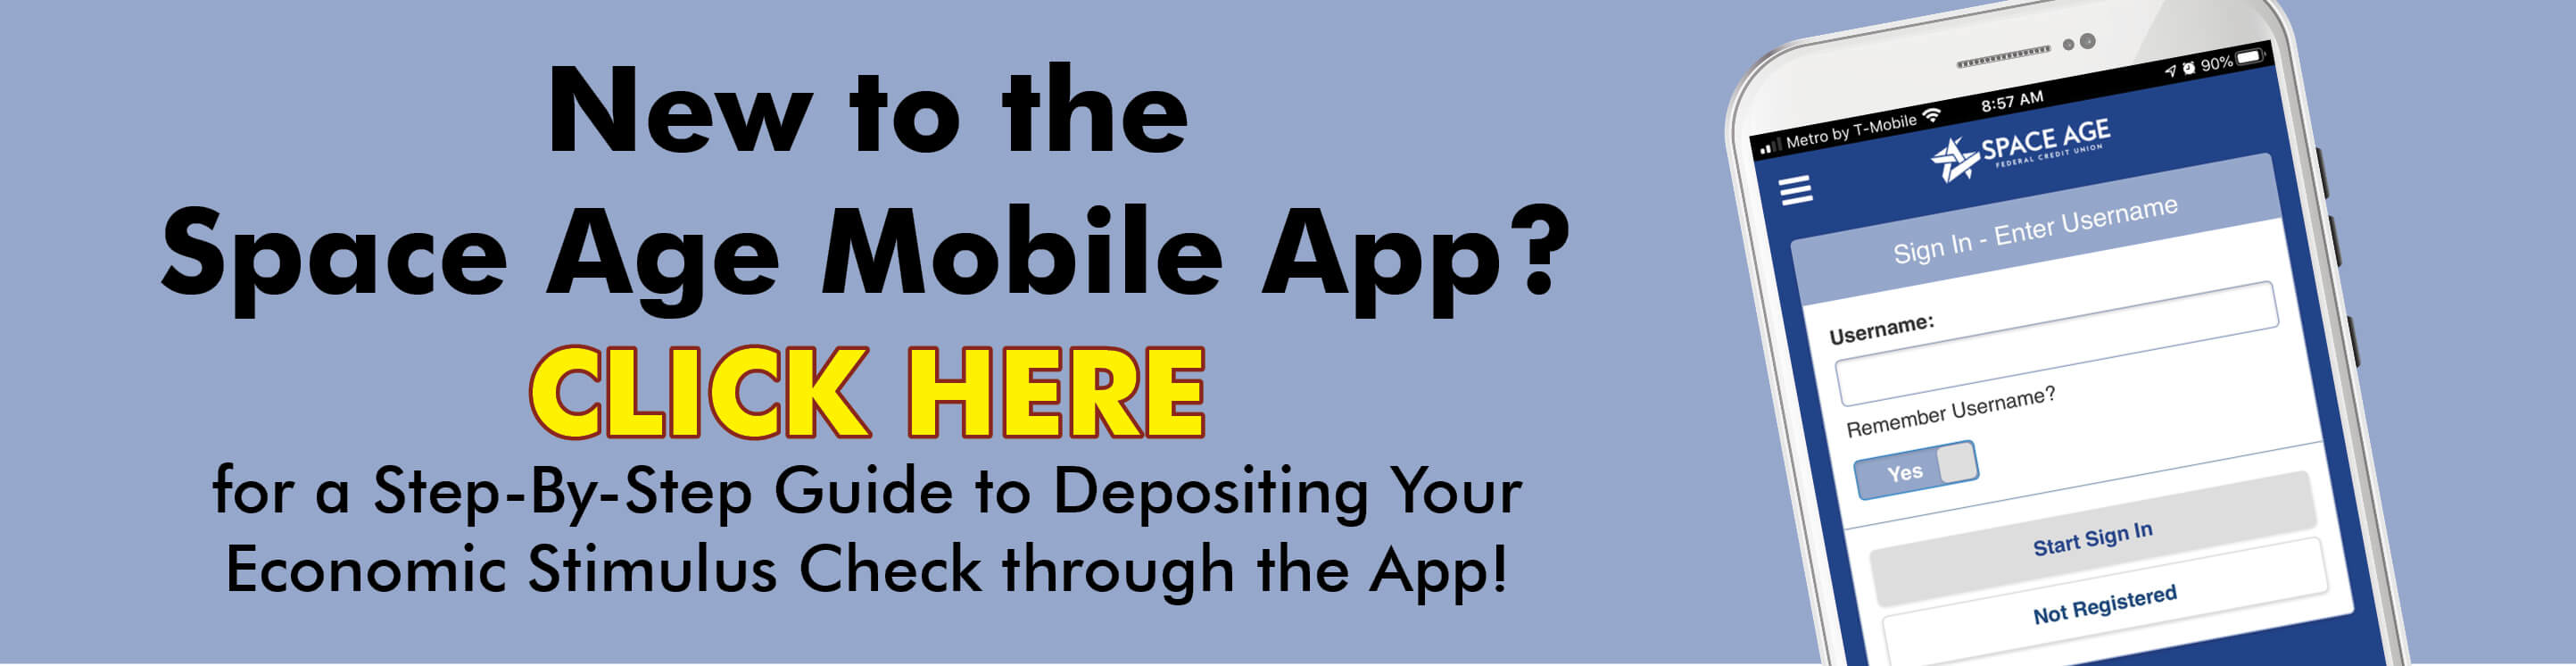 Here is an easy step by step guide to using the Space Age Mobile App to deposit your Economic Stimulus Check